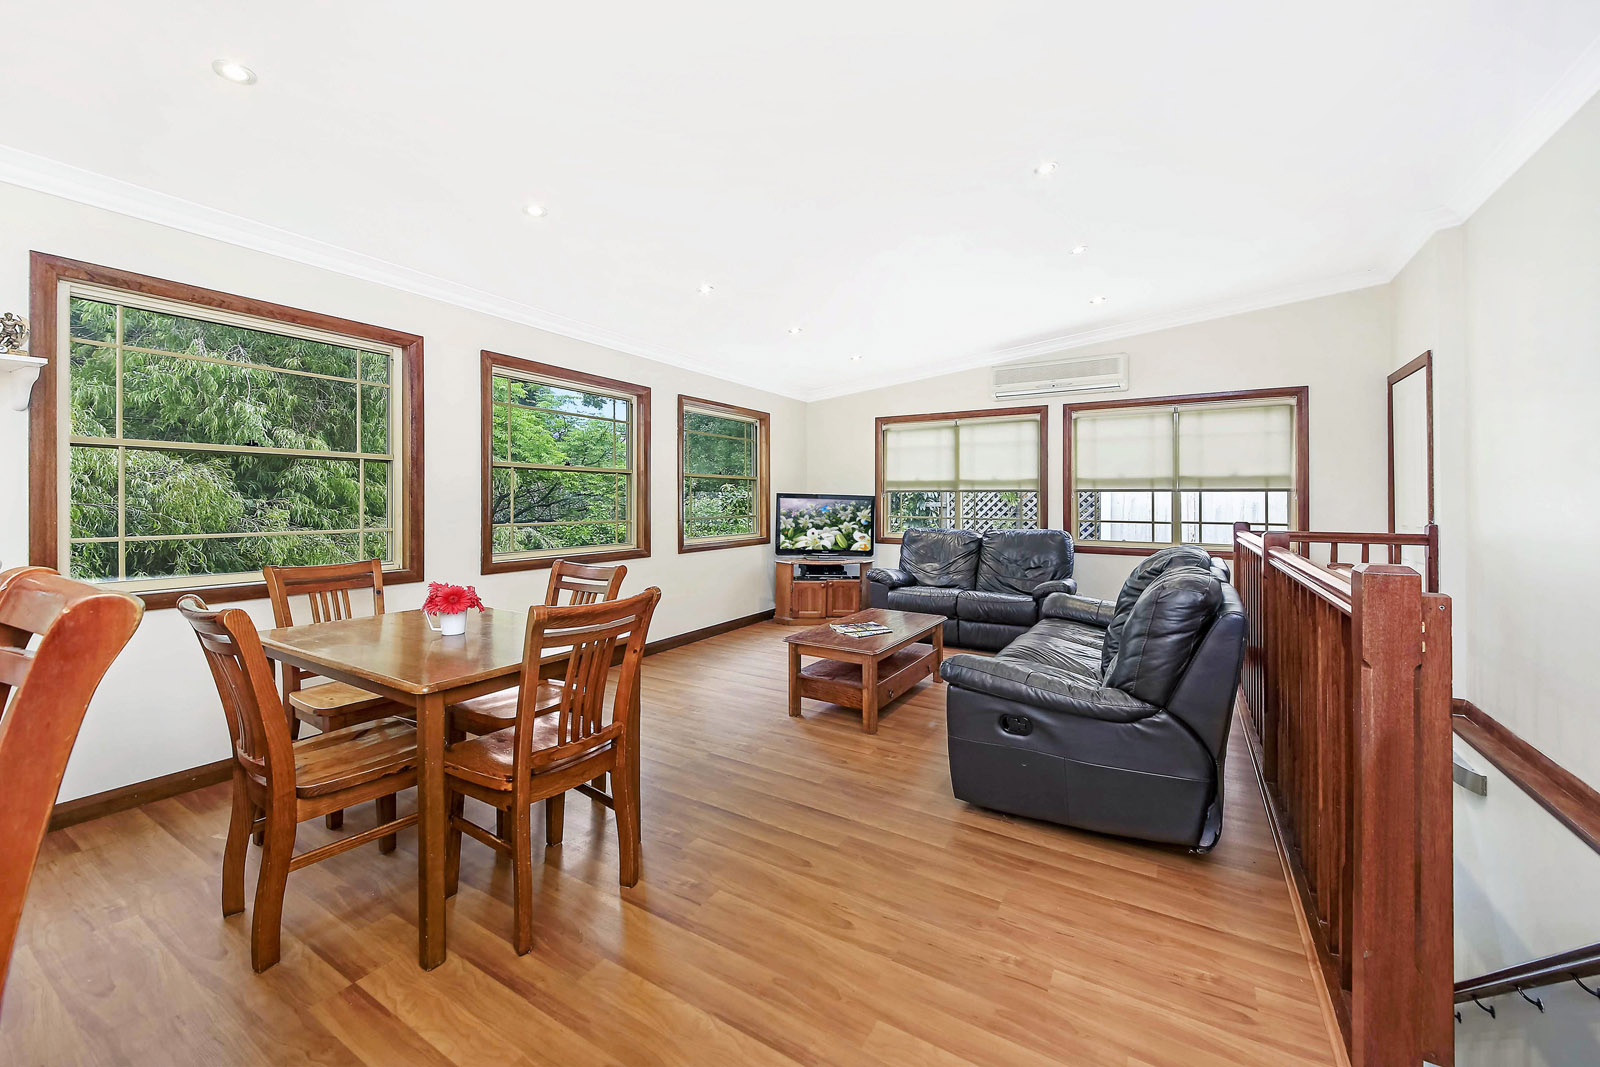 Image: 5 bedroom Extra Large Brick Home great opportunity in Kogarah!